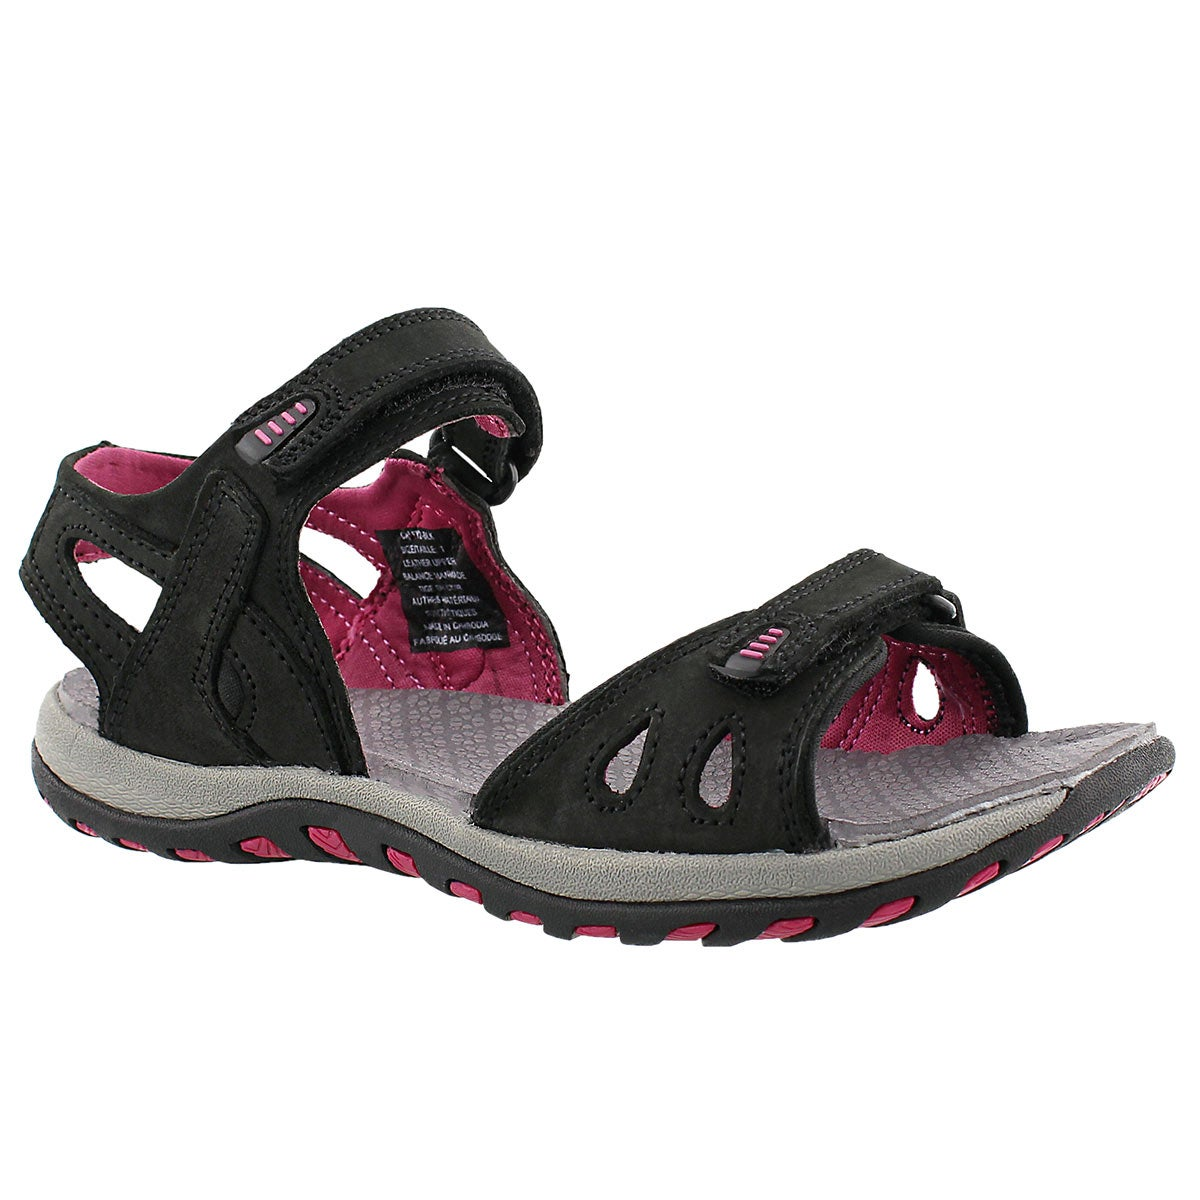 Lds Caley 2 black 3 strap sport sandal